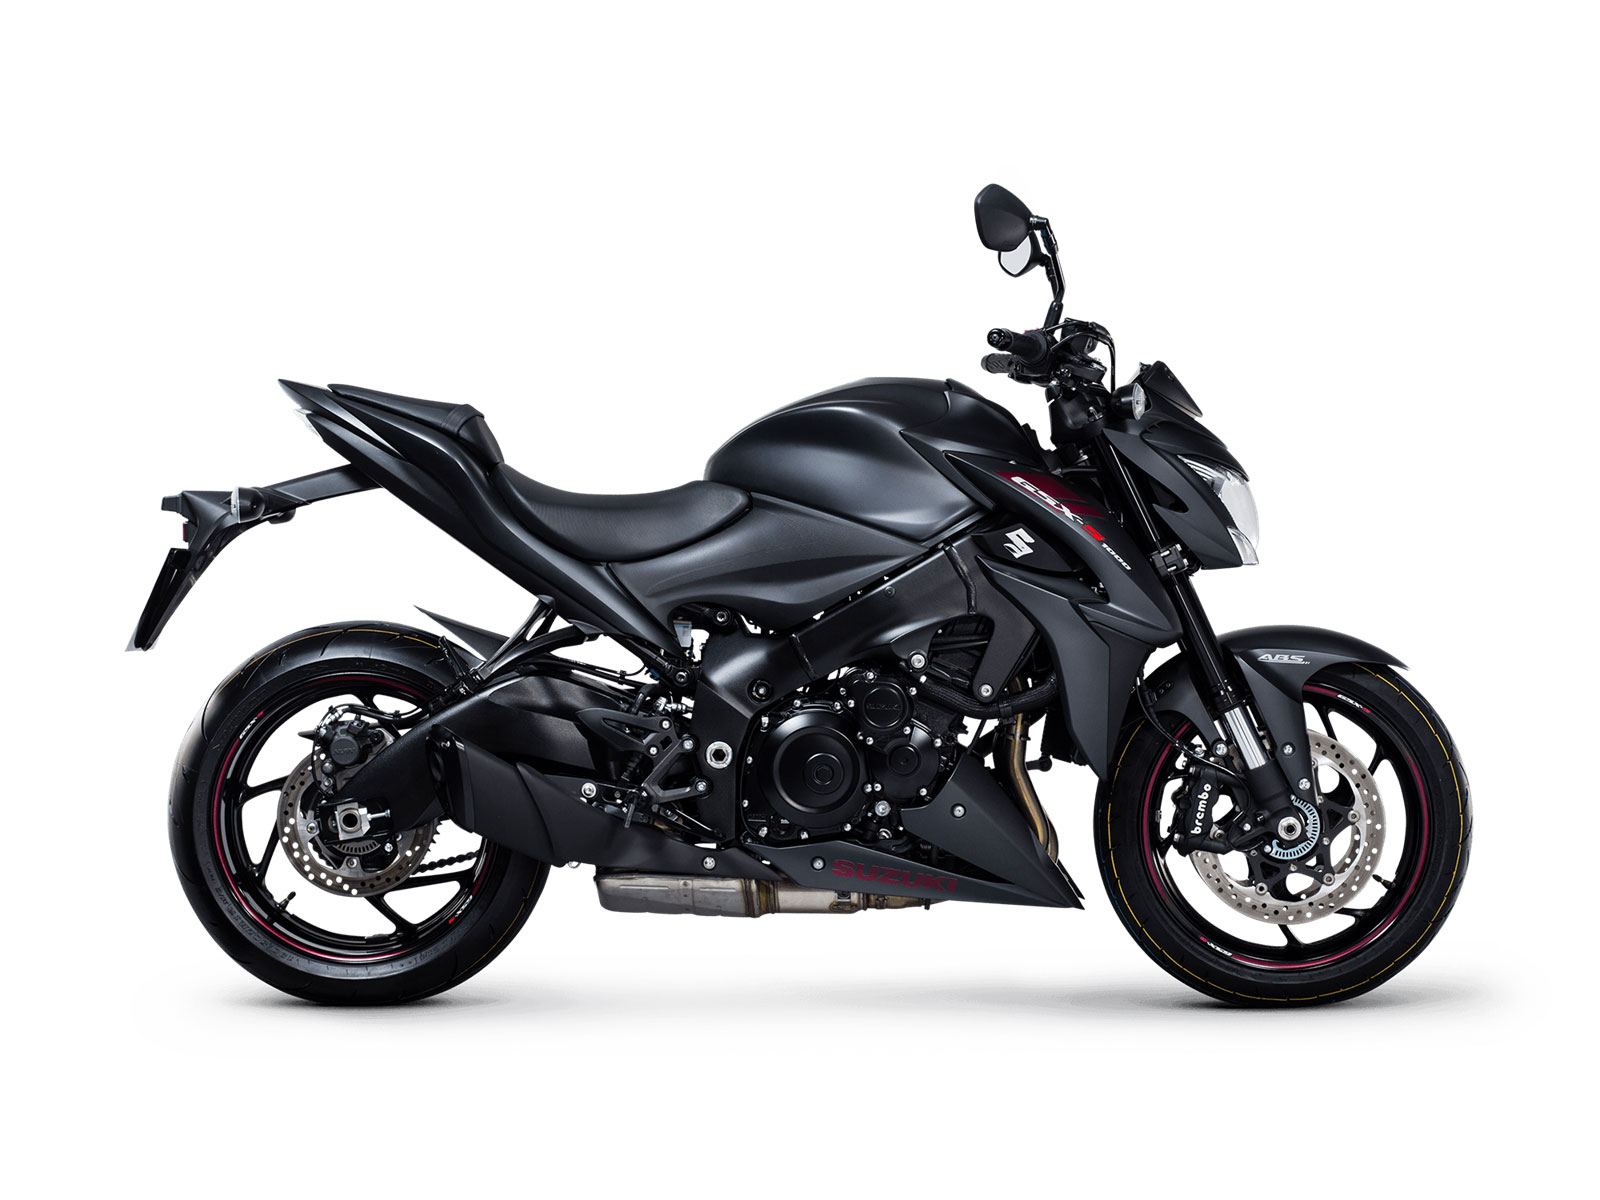 2018 suzuki gsx s1000z abs review totalmotorcycle. Black Bedroom Furniture Sets. Home Design Ideas